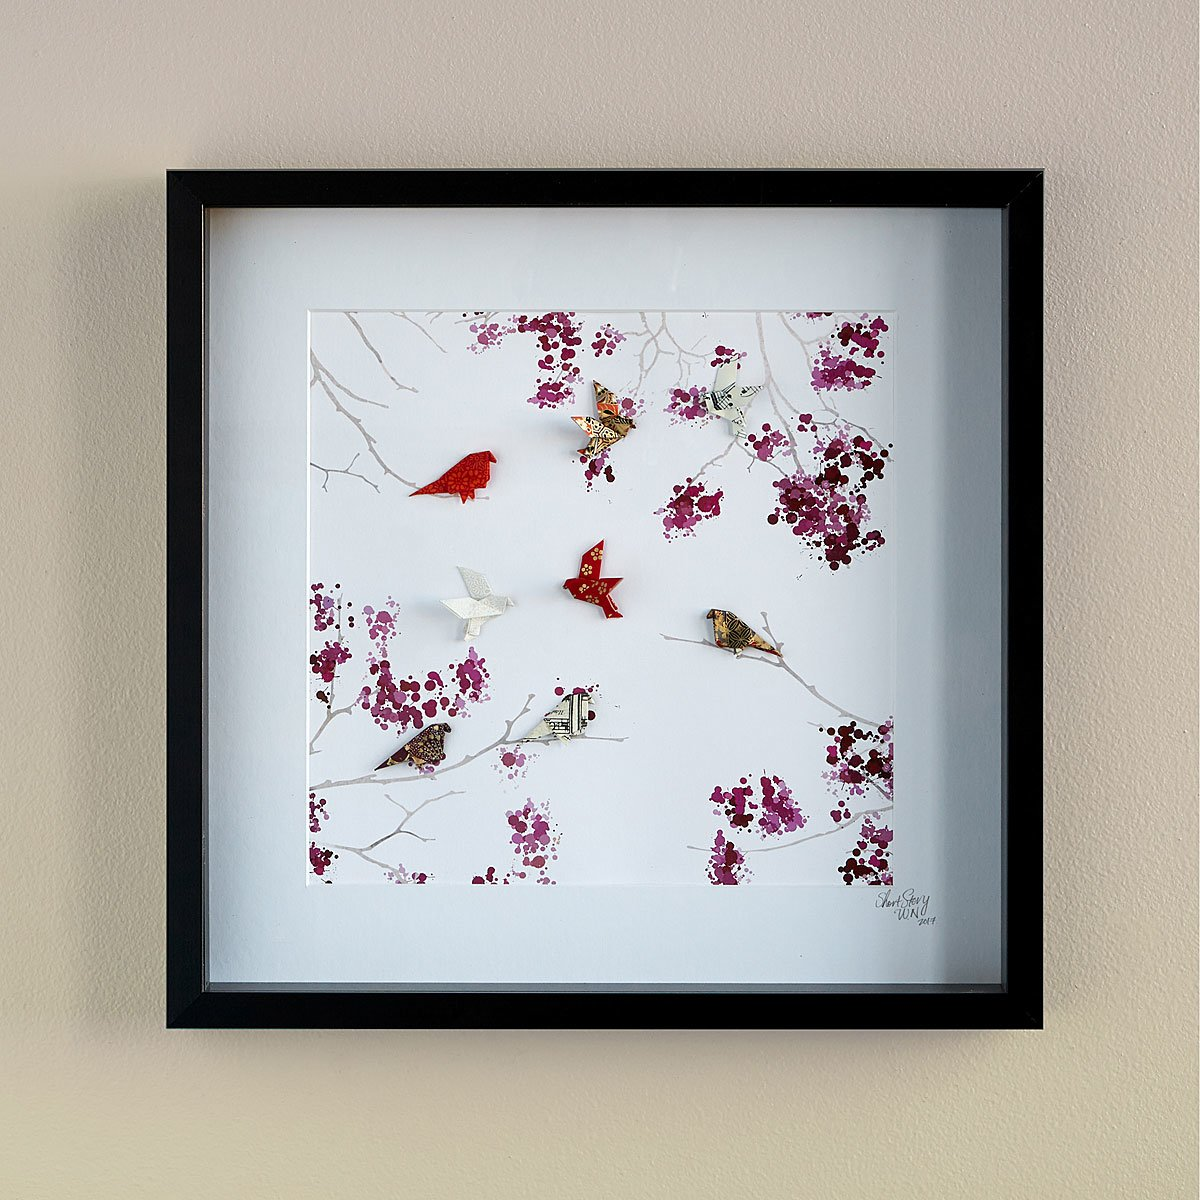 Unique wall art creative wall decor art ideas uncommongoods new cherry blossom origami art amipublicfo Images